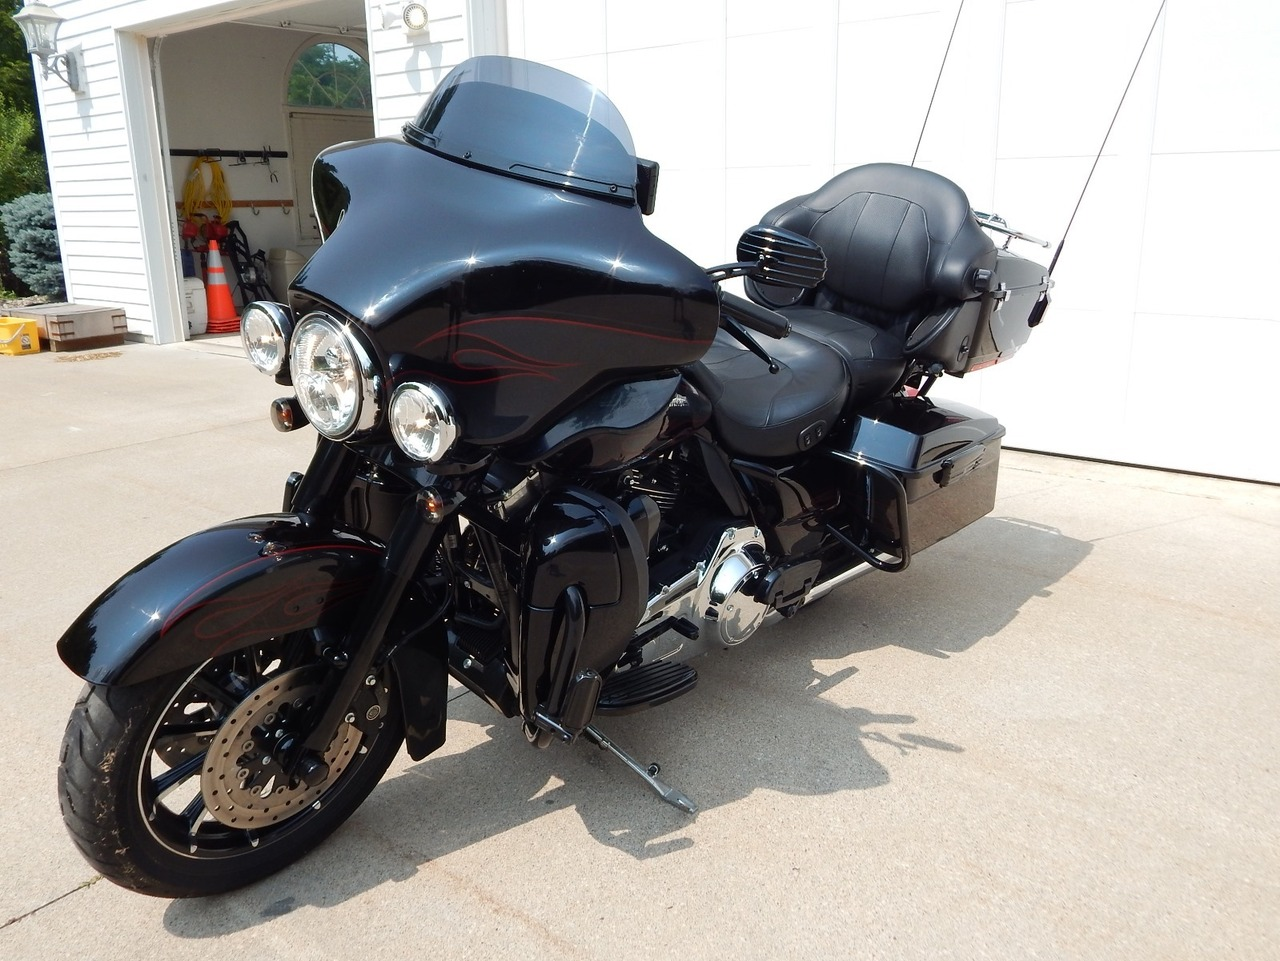 2010 Harley-Davidson Electra Glide CVO ULTRA CLASSIC, motorcycle listing